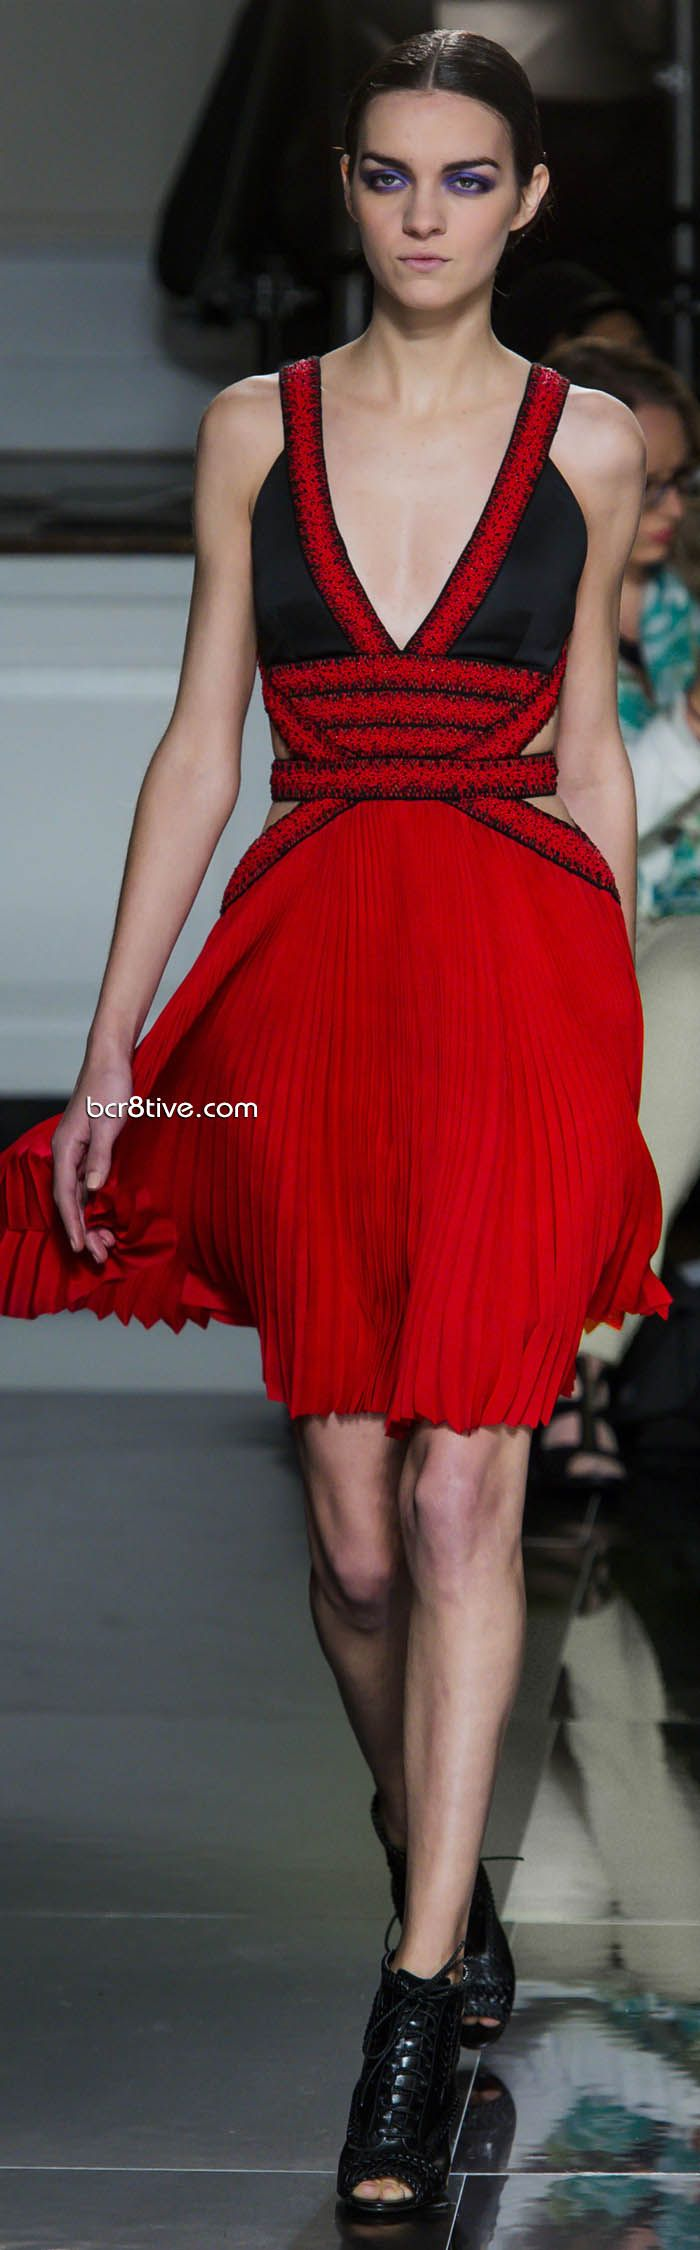 369 best jason wu images on pinterest | couture, dreams and flower